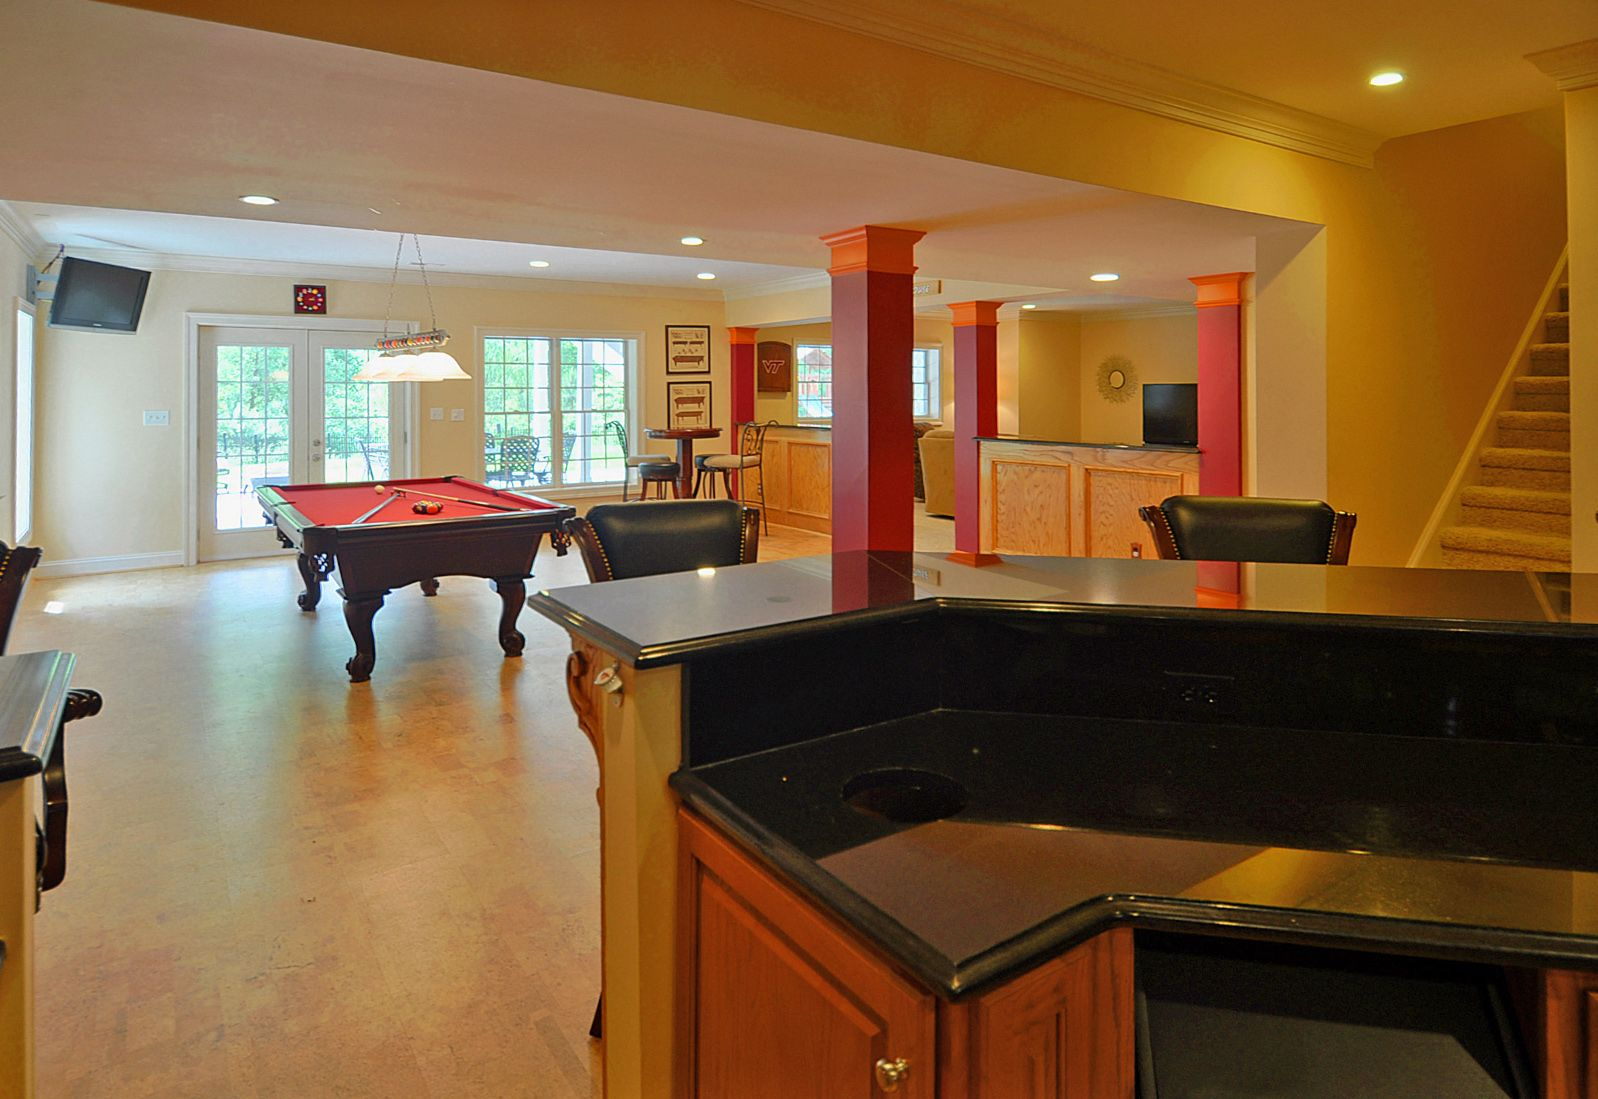 Bar With Old School Bottle Opener Pool Table TV And Cork - Old school pool table